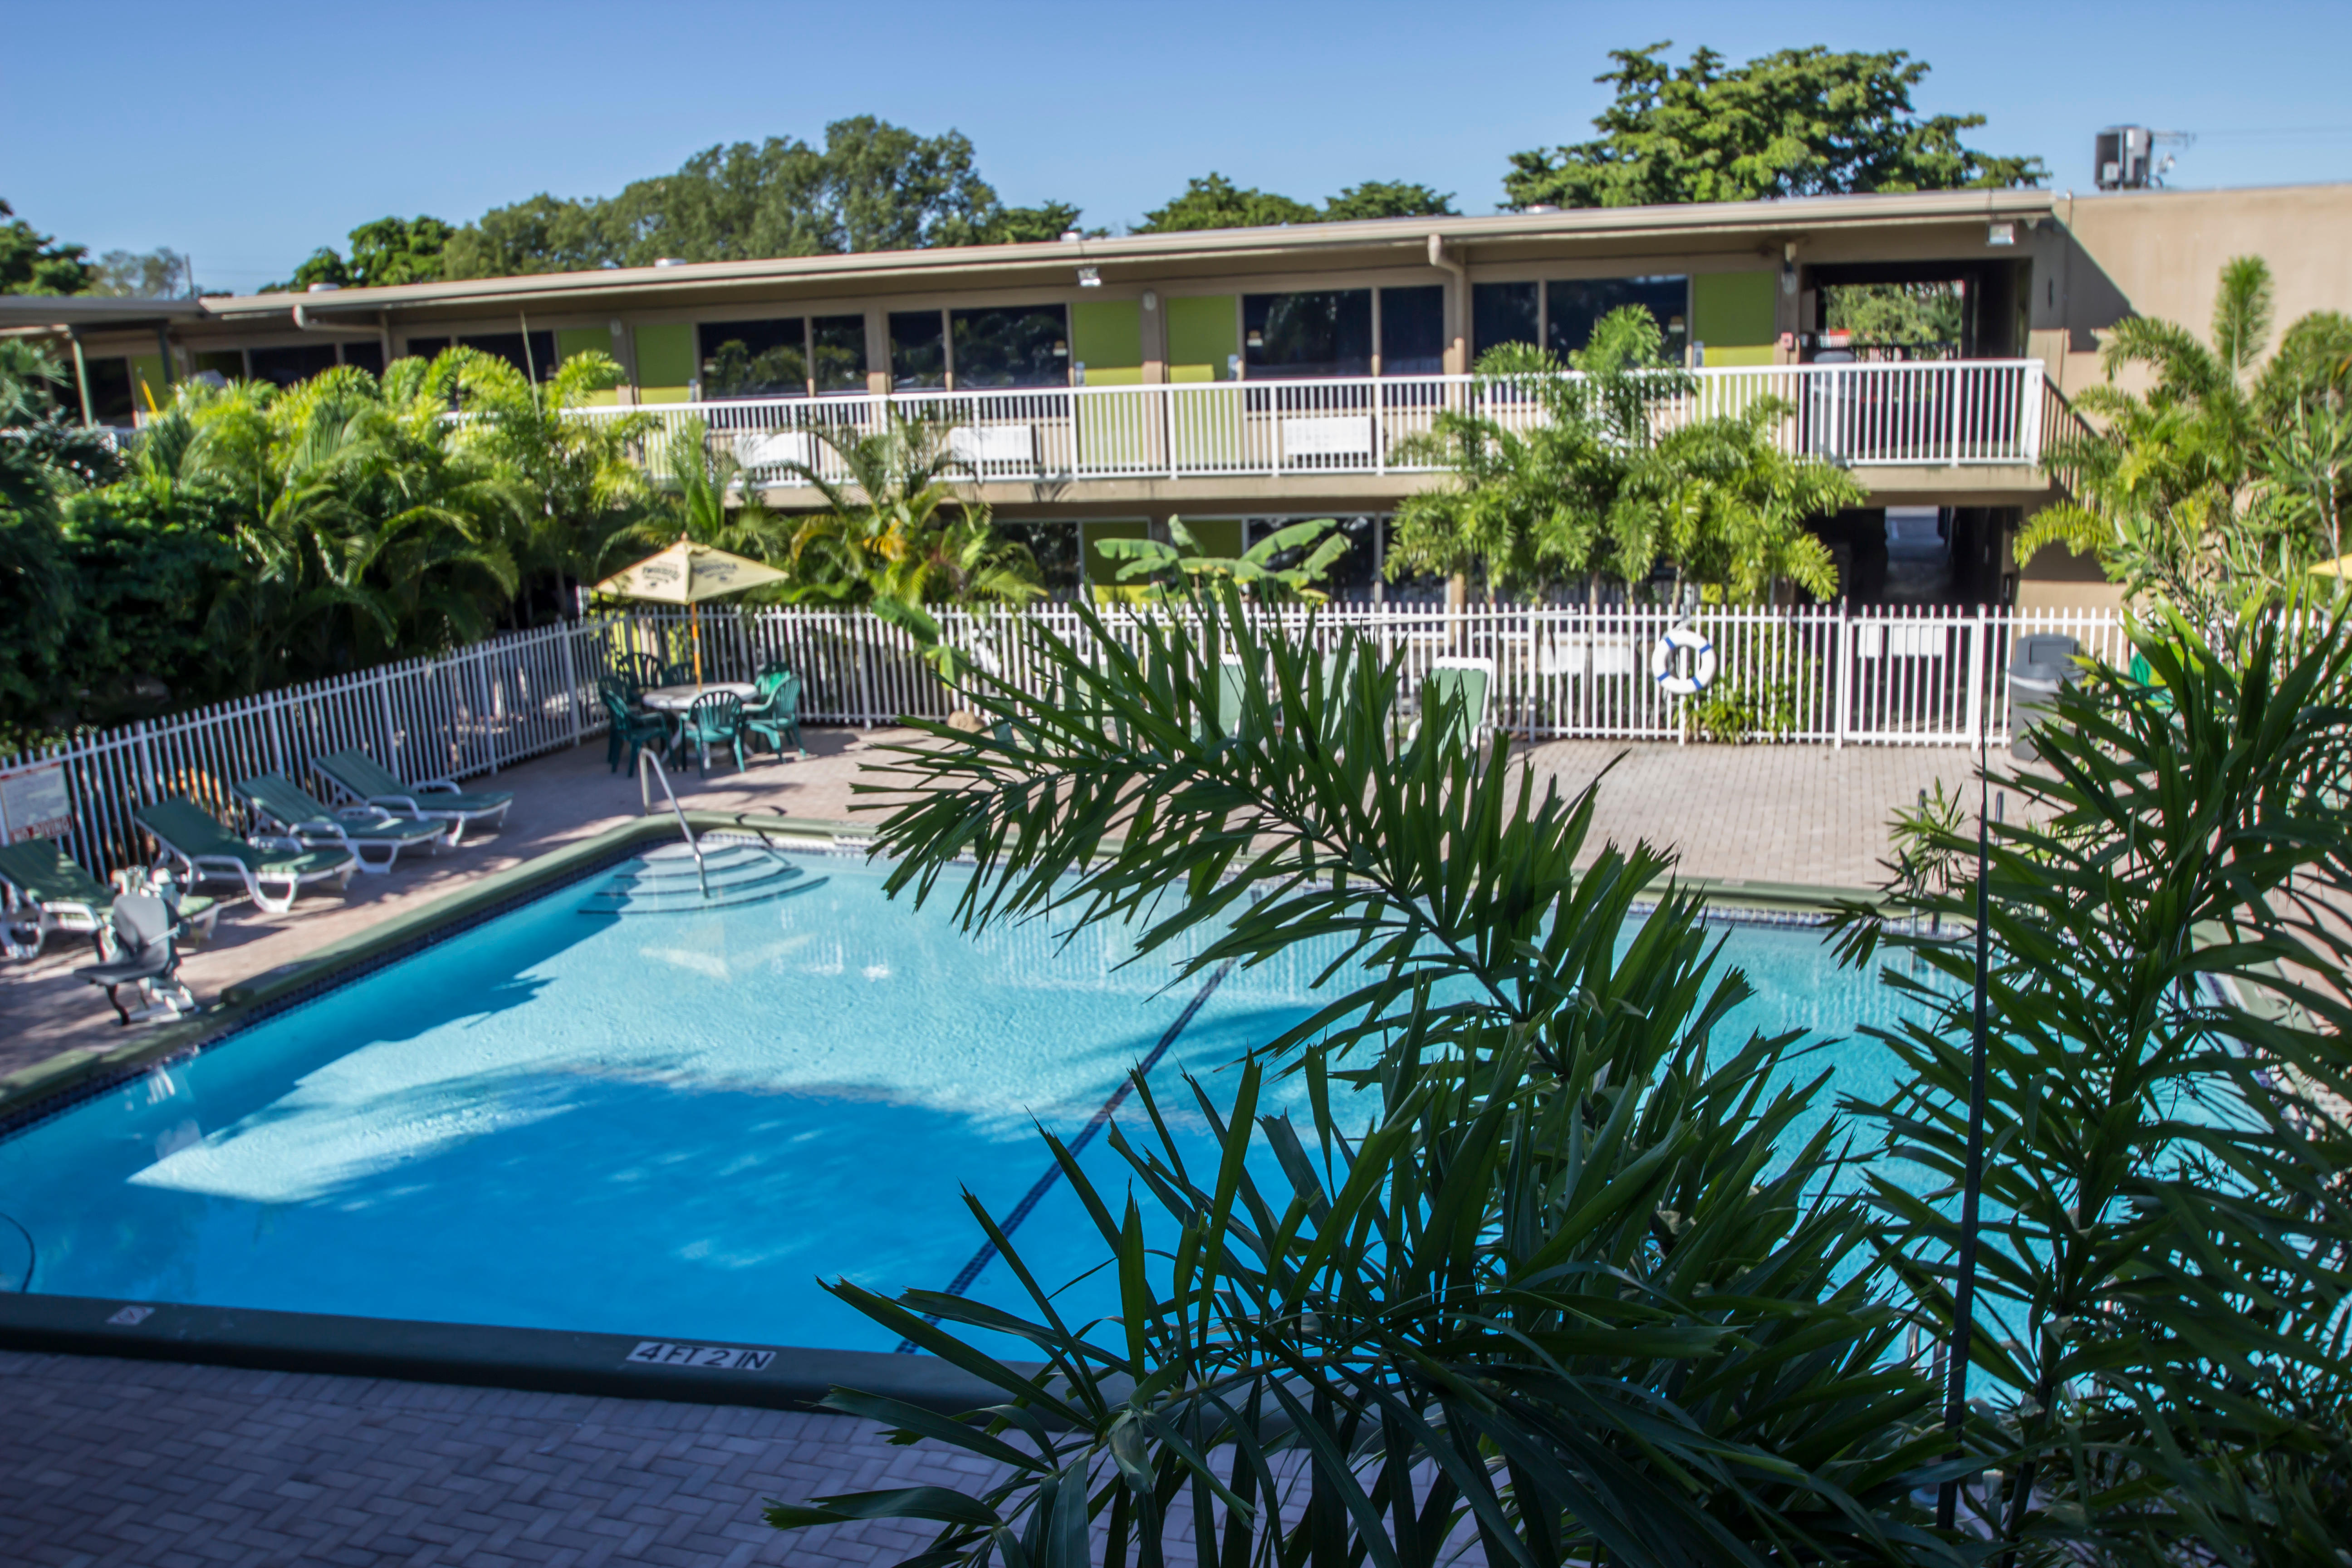 Rodeway Inn & Suites Fort Lauderdale Airport and Port Everglades Cruise Port Hotel